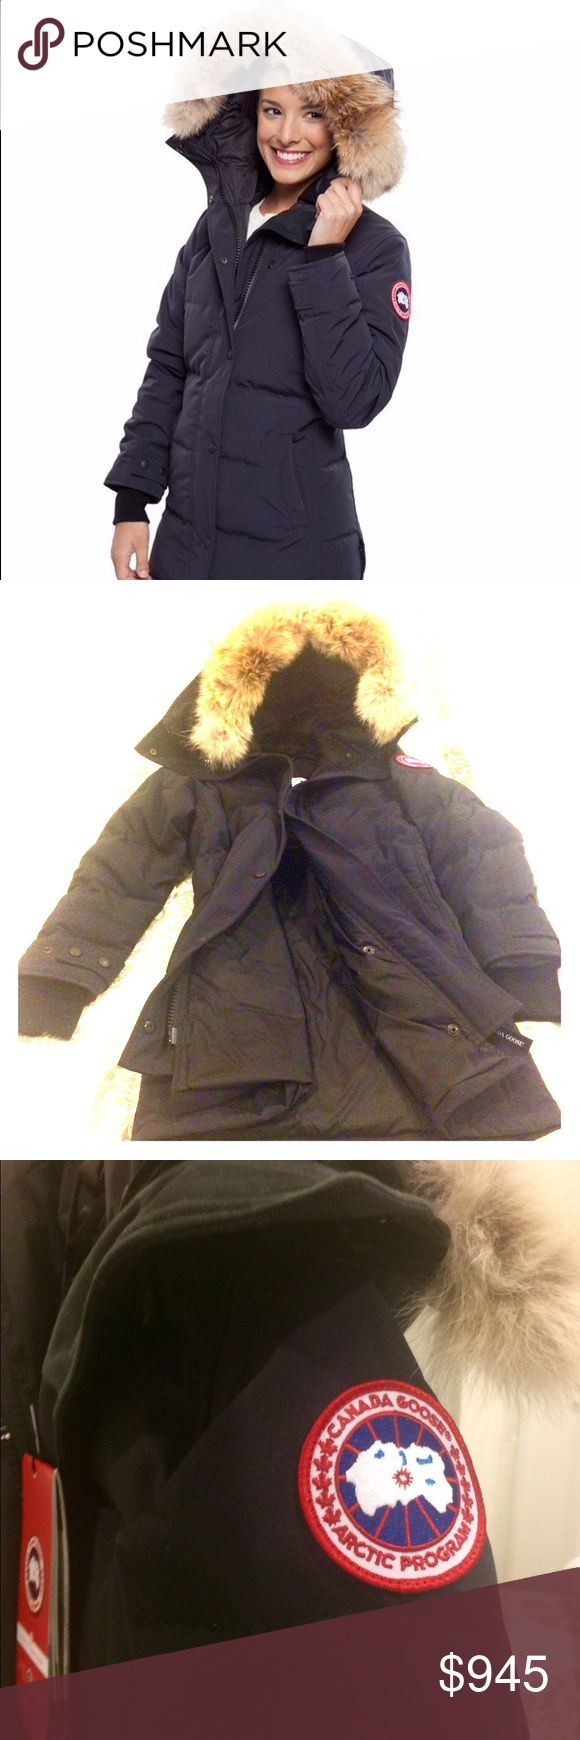 Canada Goose Shelburne Parka (XXS) New, authentic Canada Goose parka with all original tags and registration paperwork attached. Never been worn. Navy. Adult XXS. Retail value $900. Canada Goose Jackets & Coats